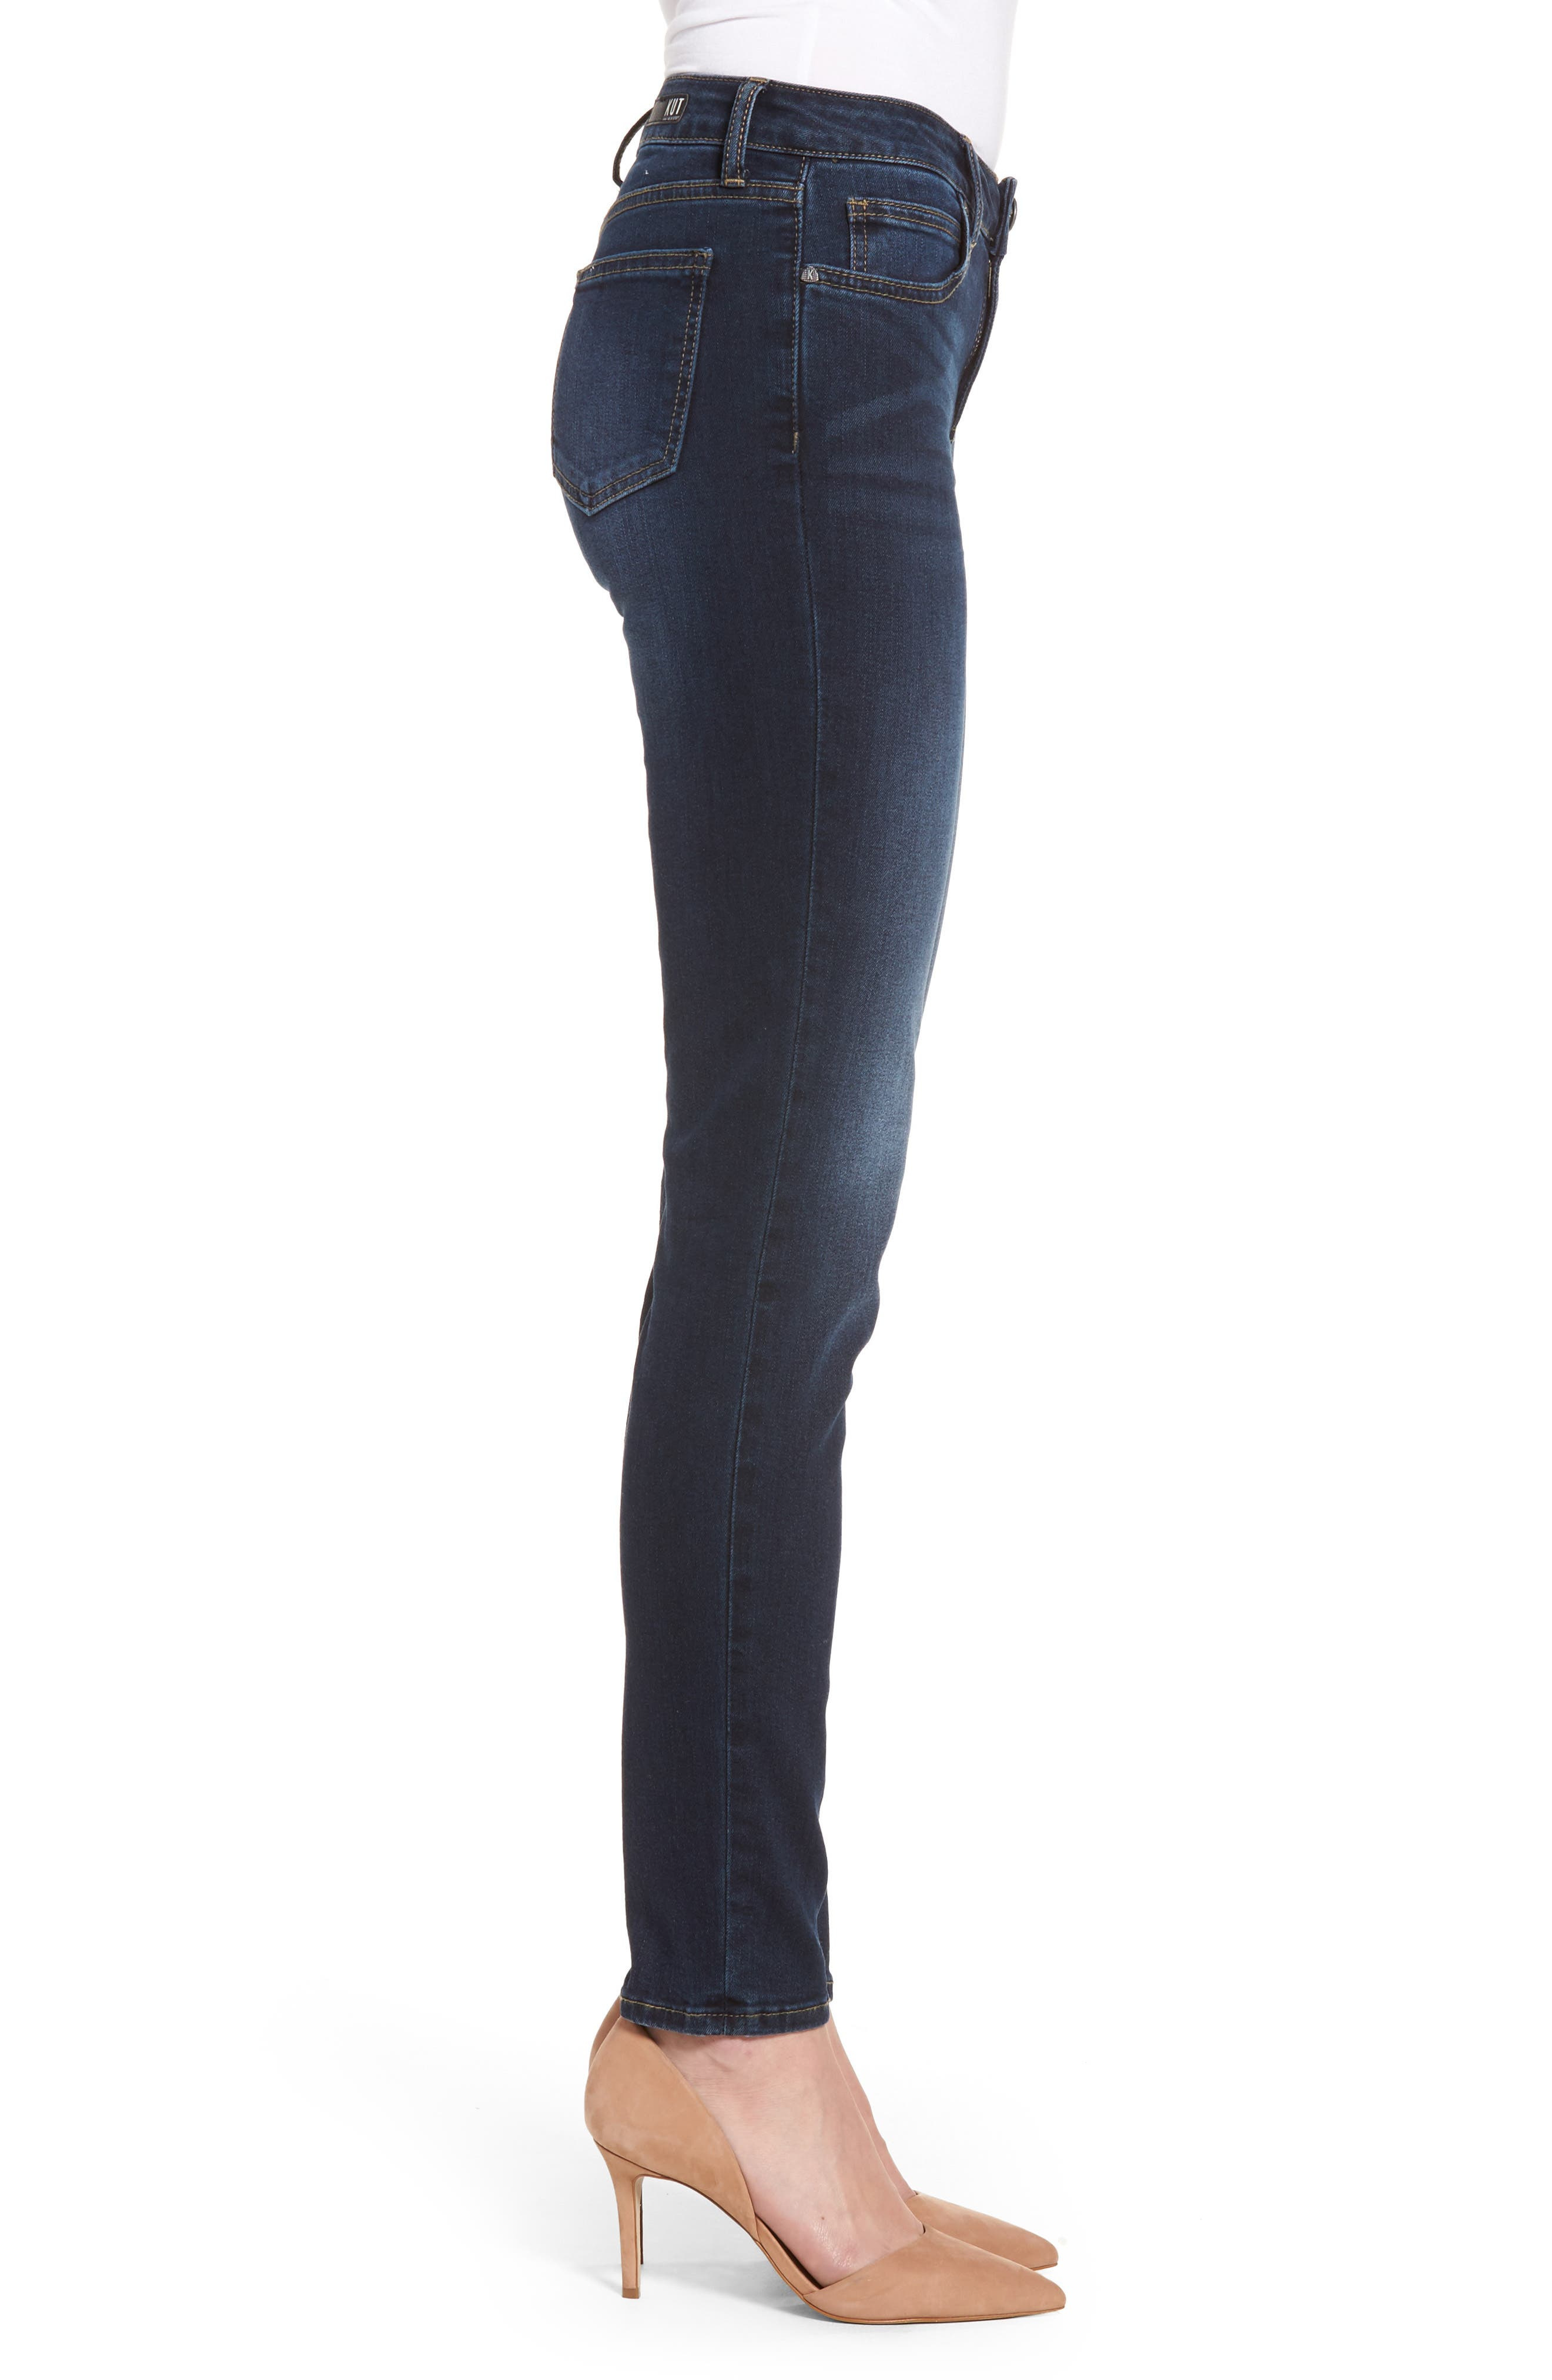 Diana Curvy Fit Skinny Jeans,                             Alternate thumbnail 3, color,